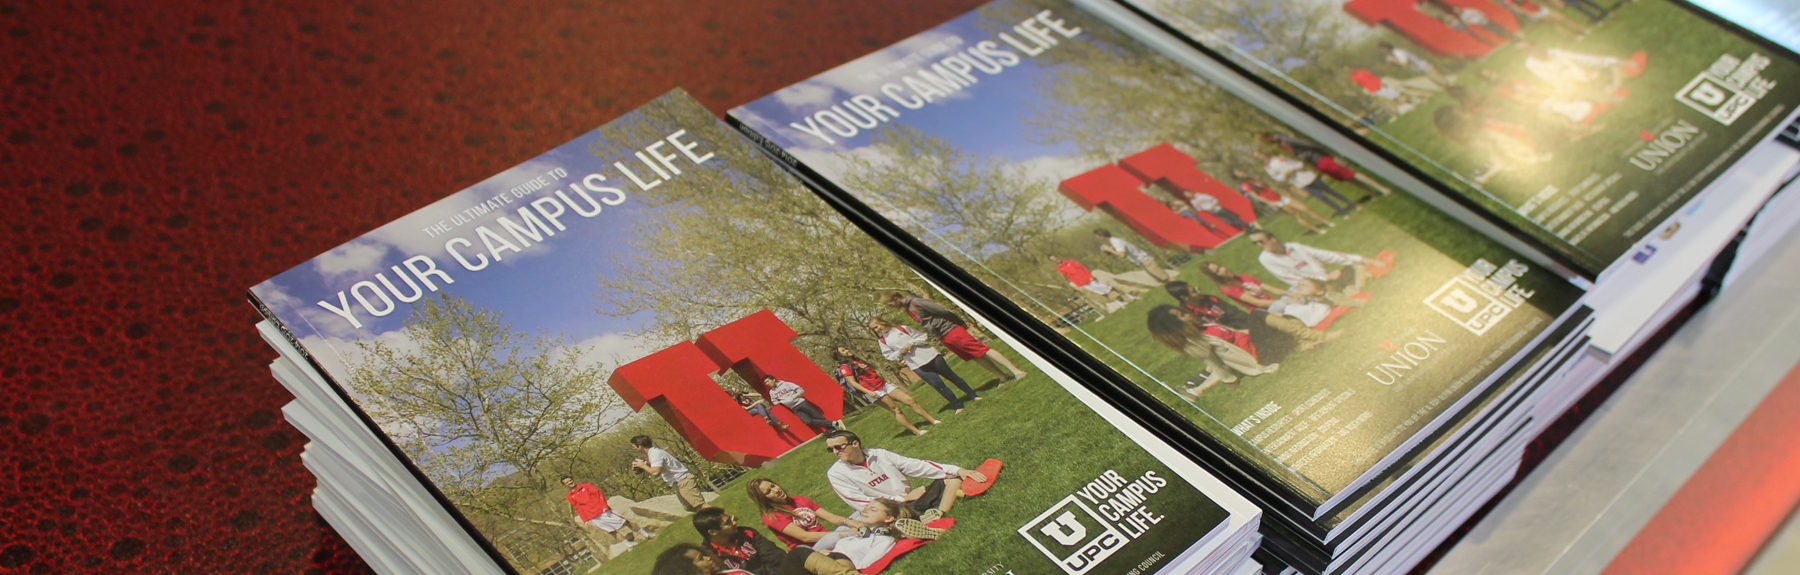 Click to read about the Union's Your Campus Life guidebook.